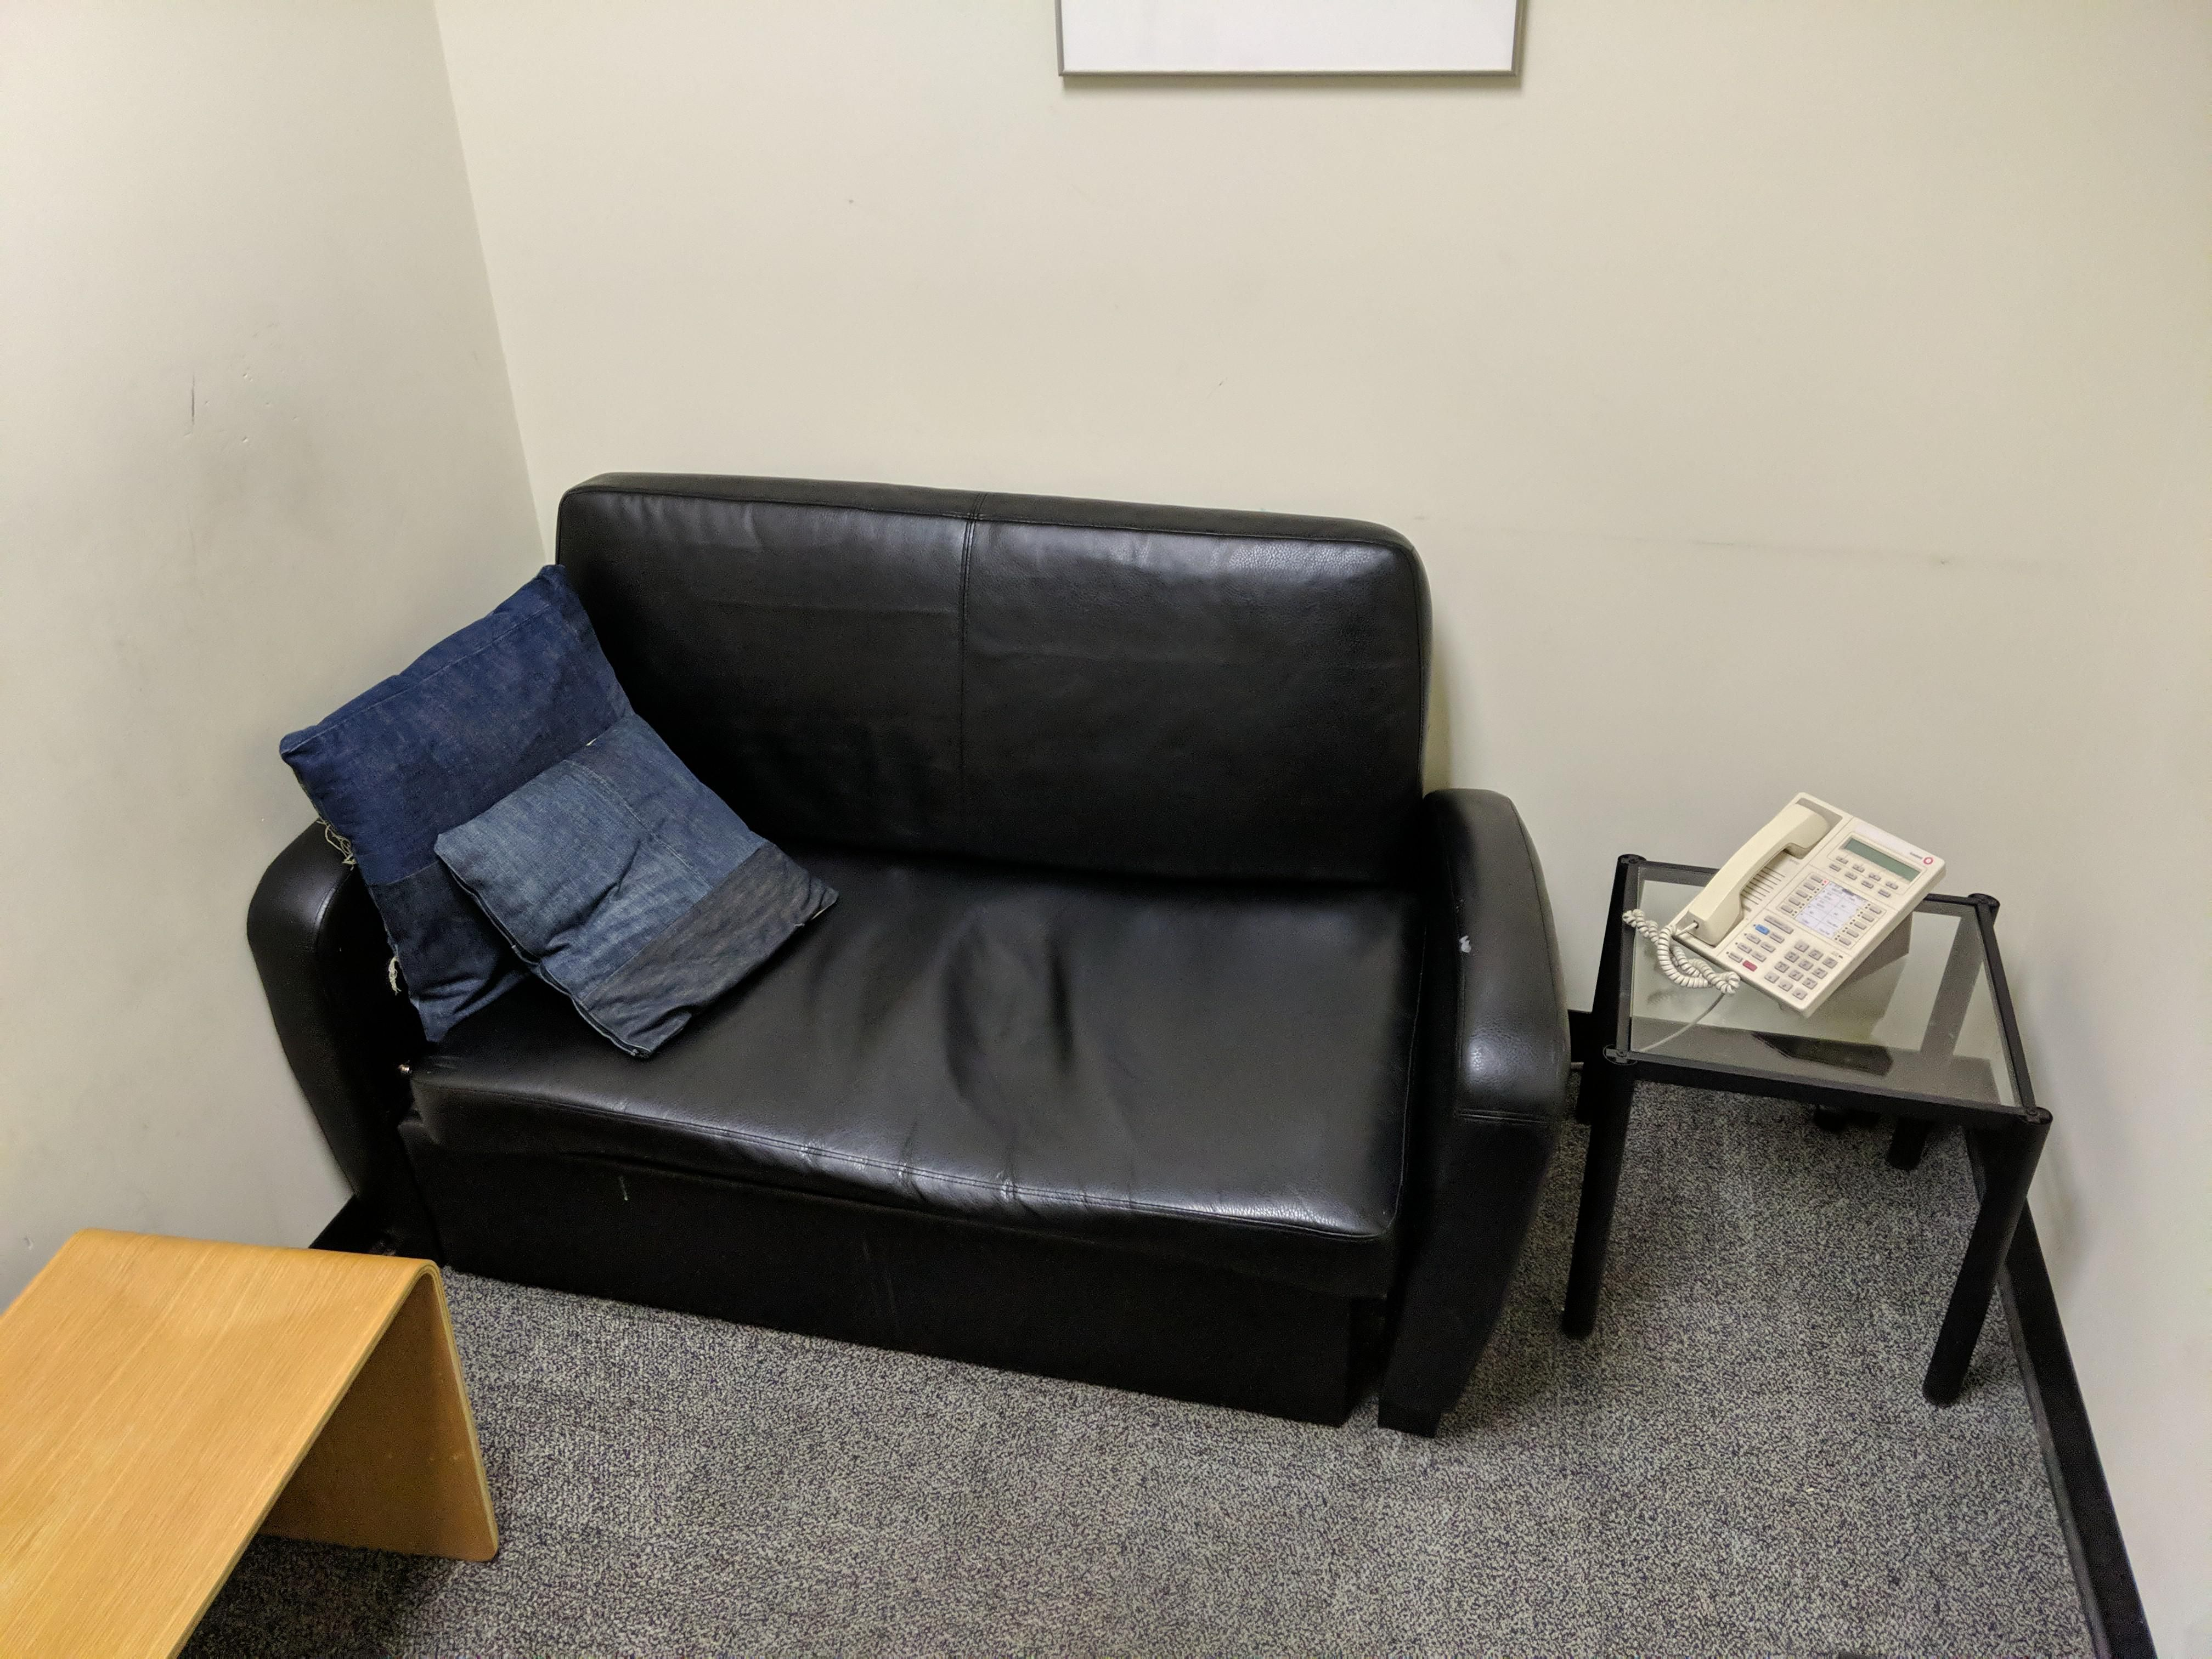 The quiet room at my job looks awfully familiar...